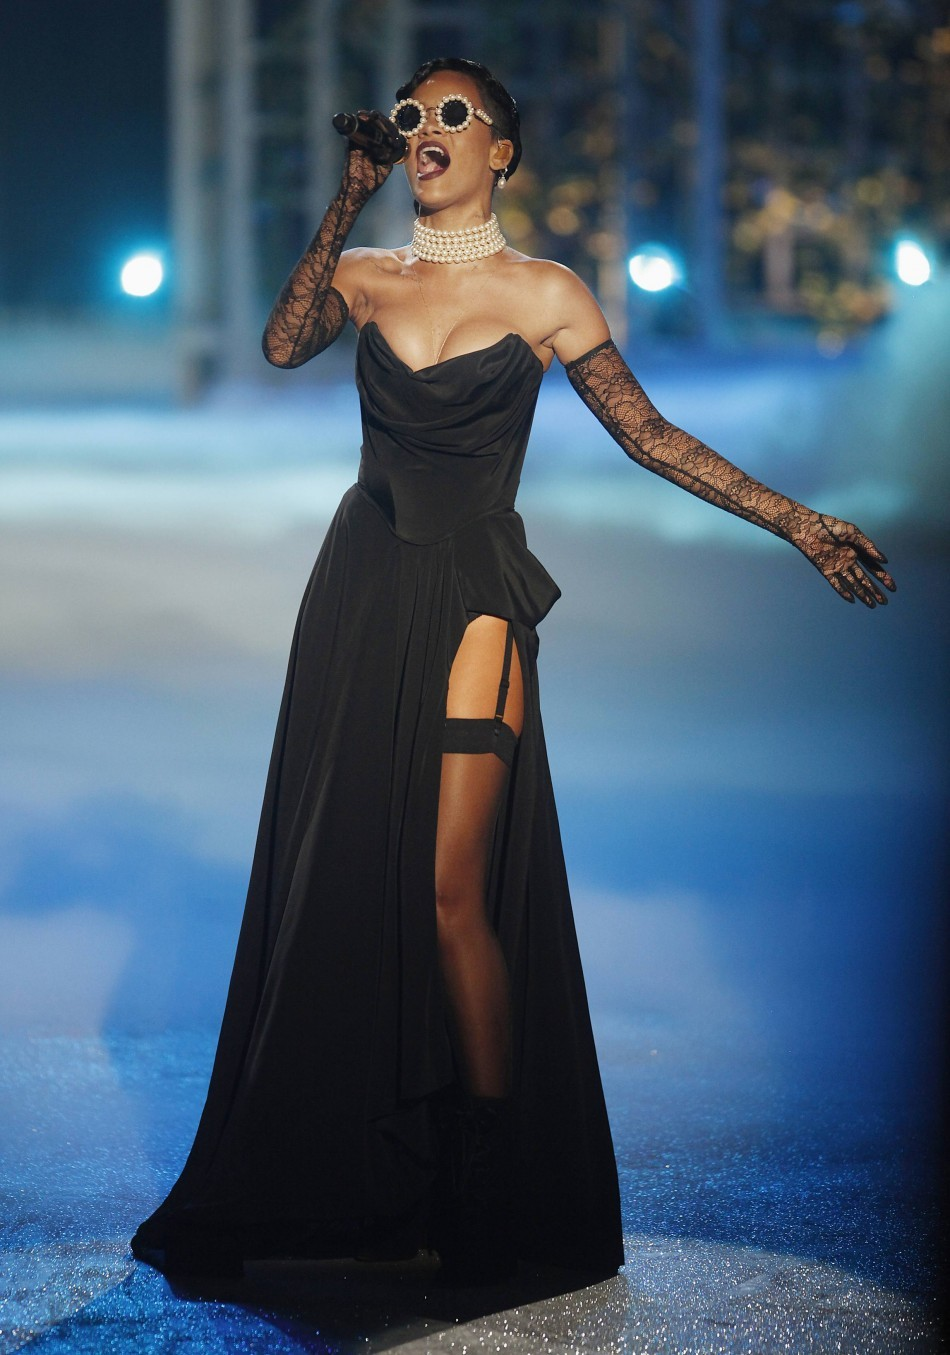 Singer Rihanna performs at the 2013 Victoria's Secret Fashion Show.